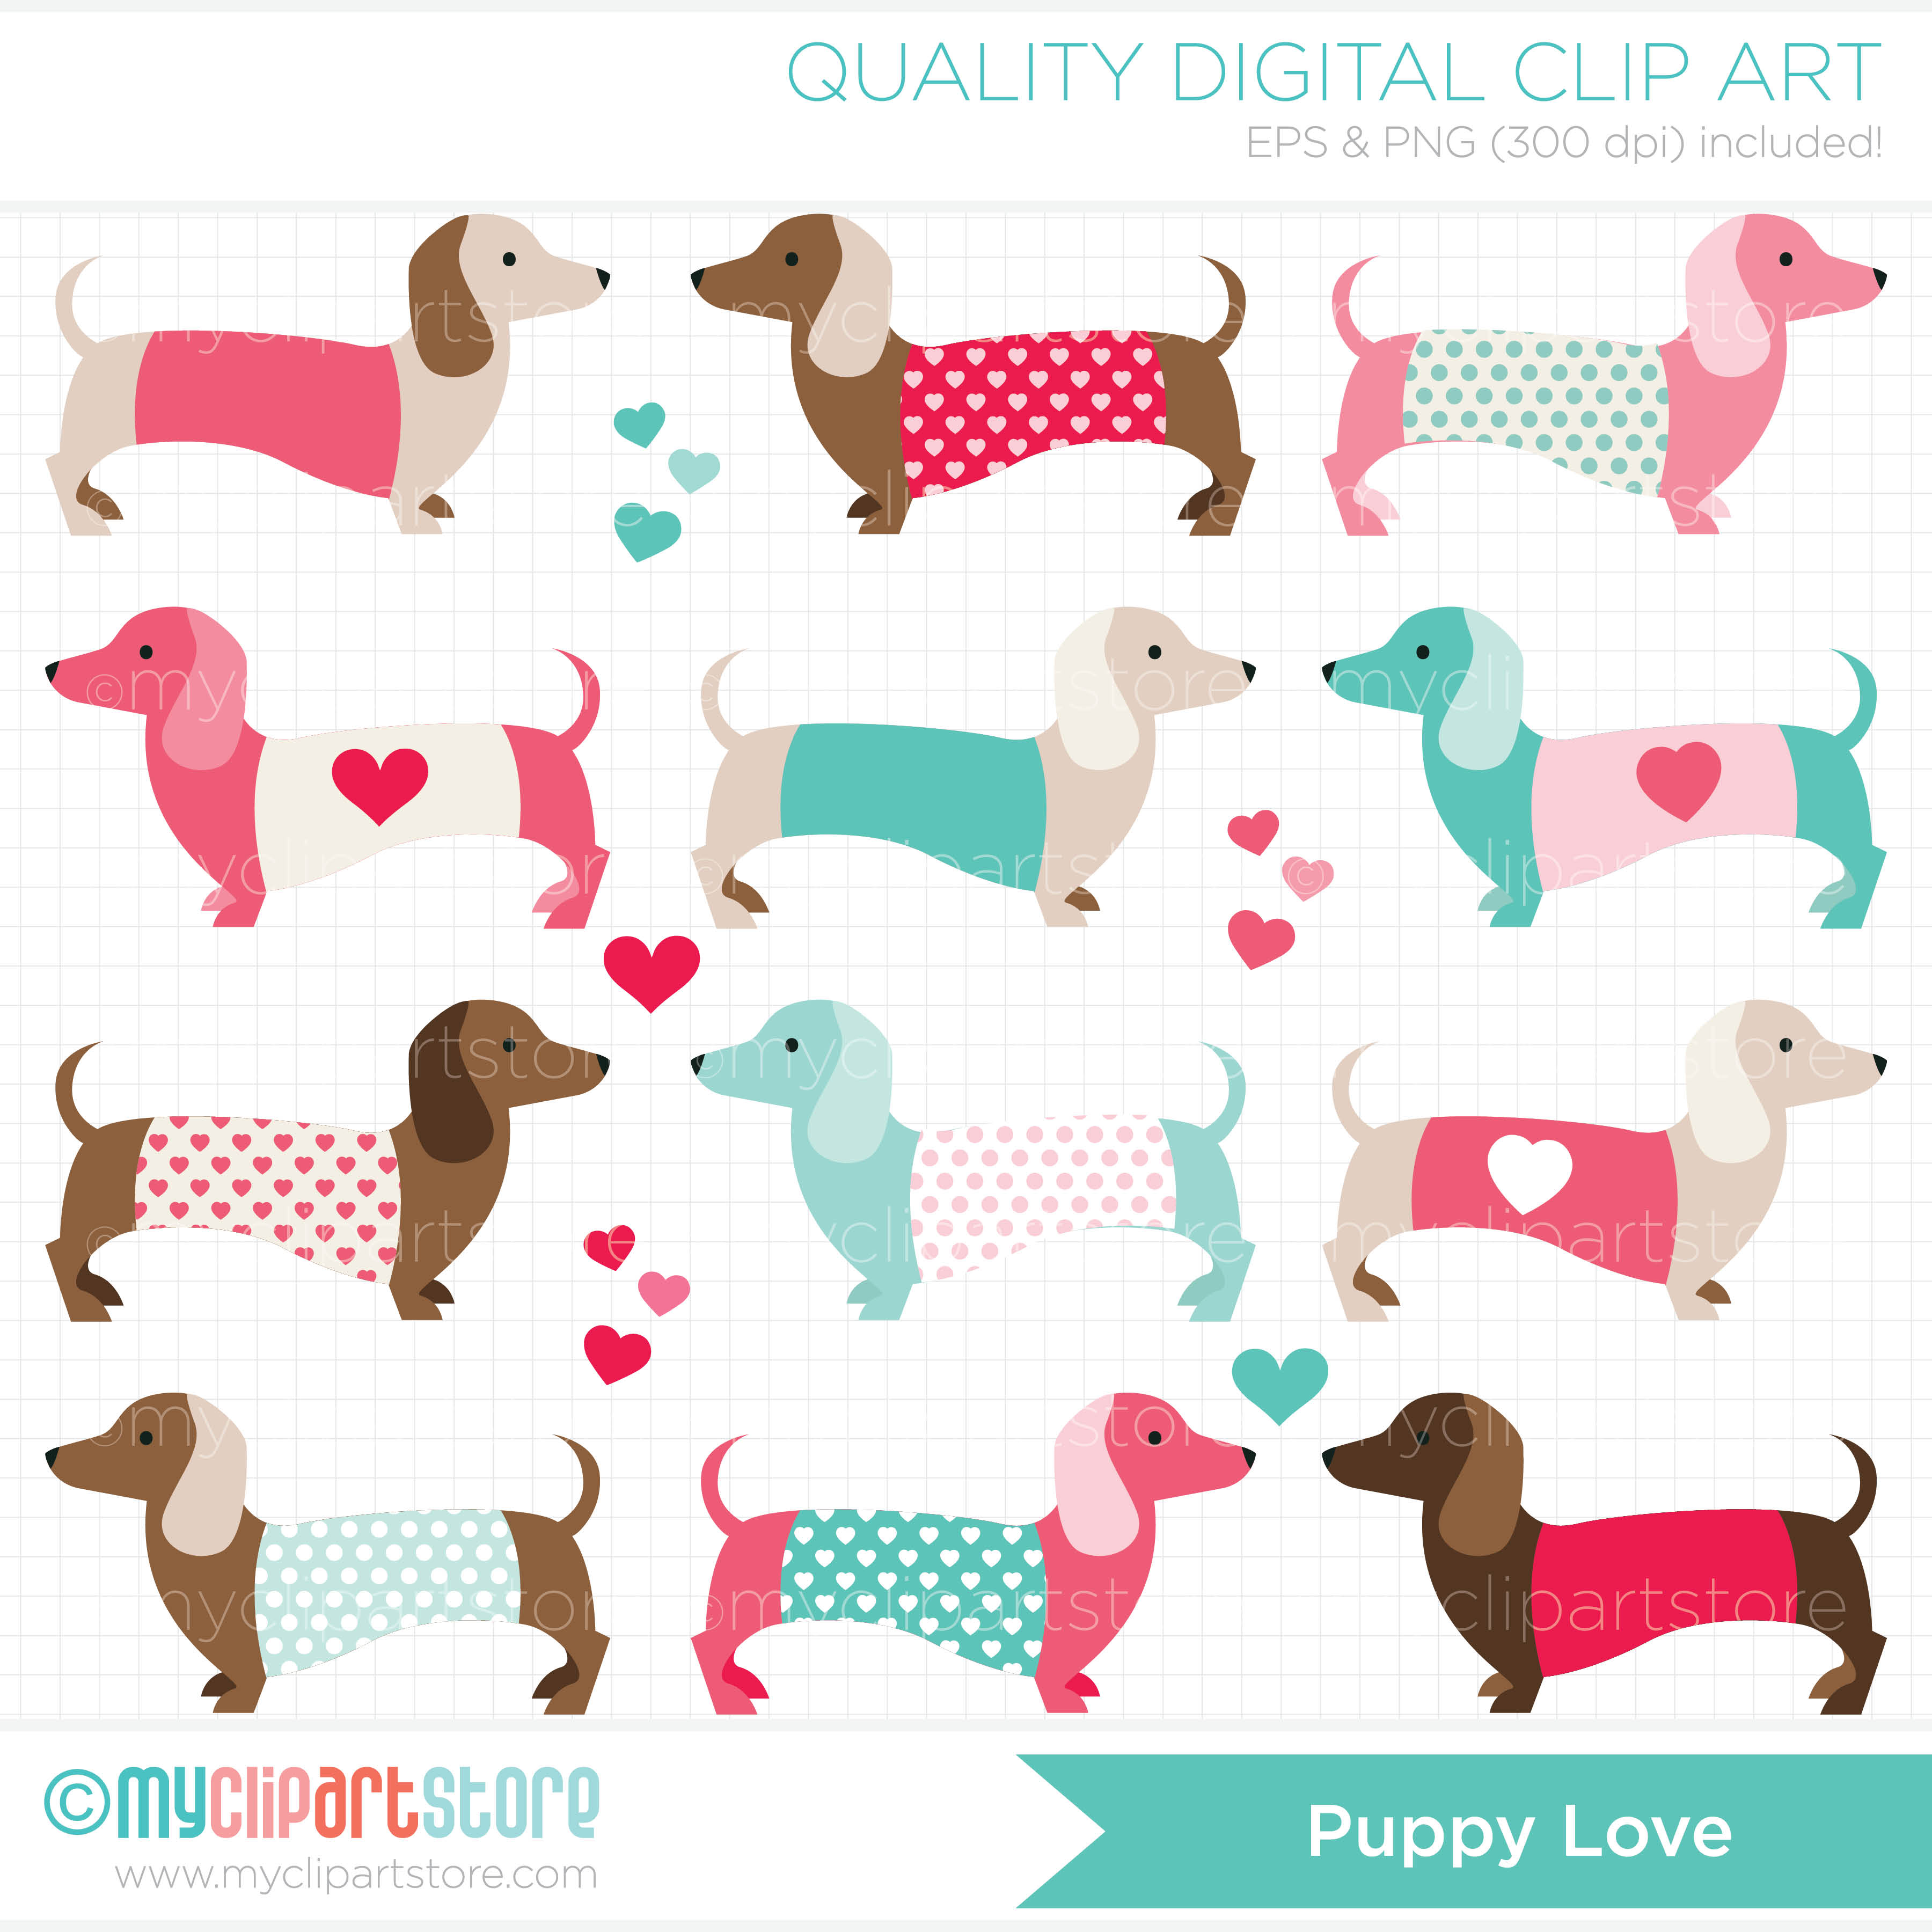 My Clipart Store.